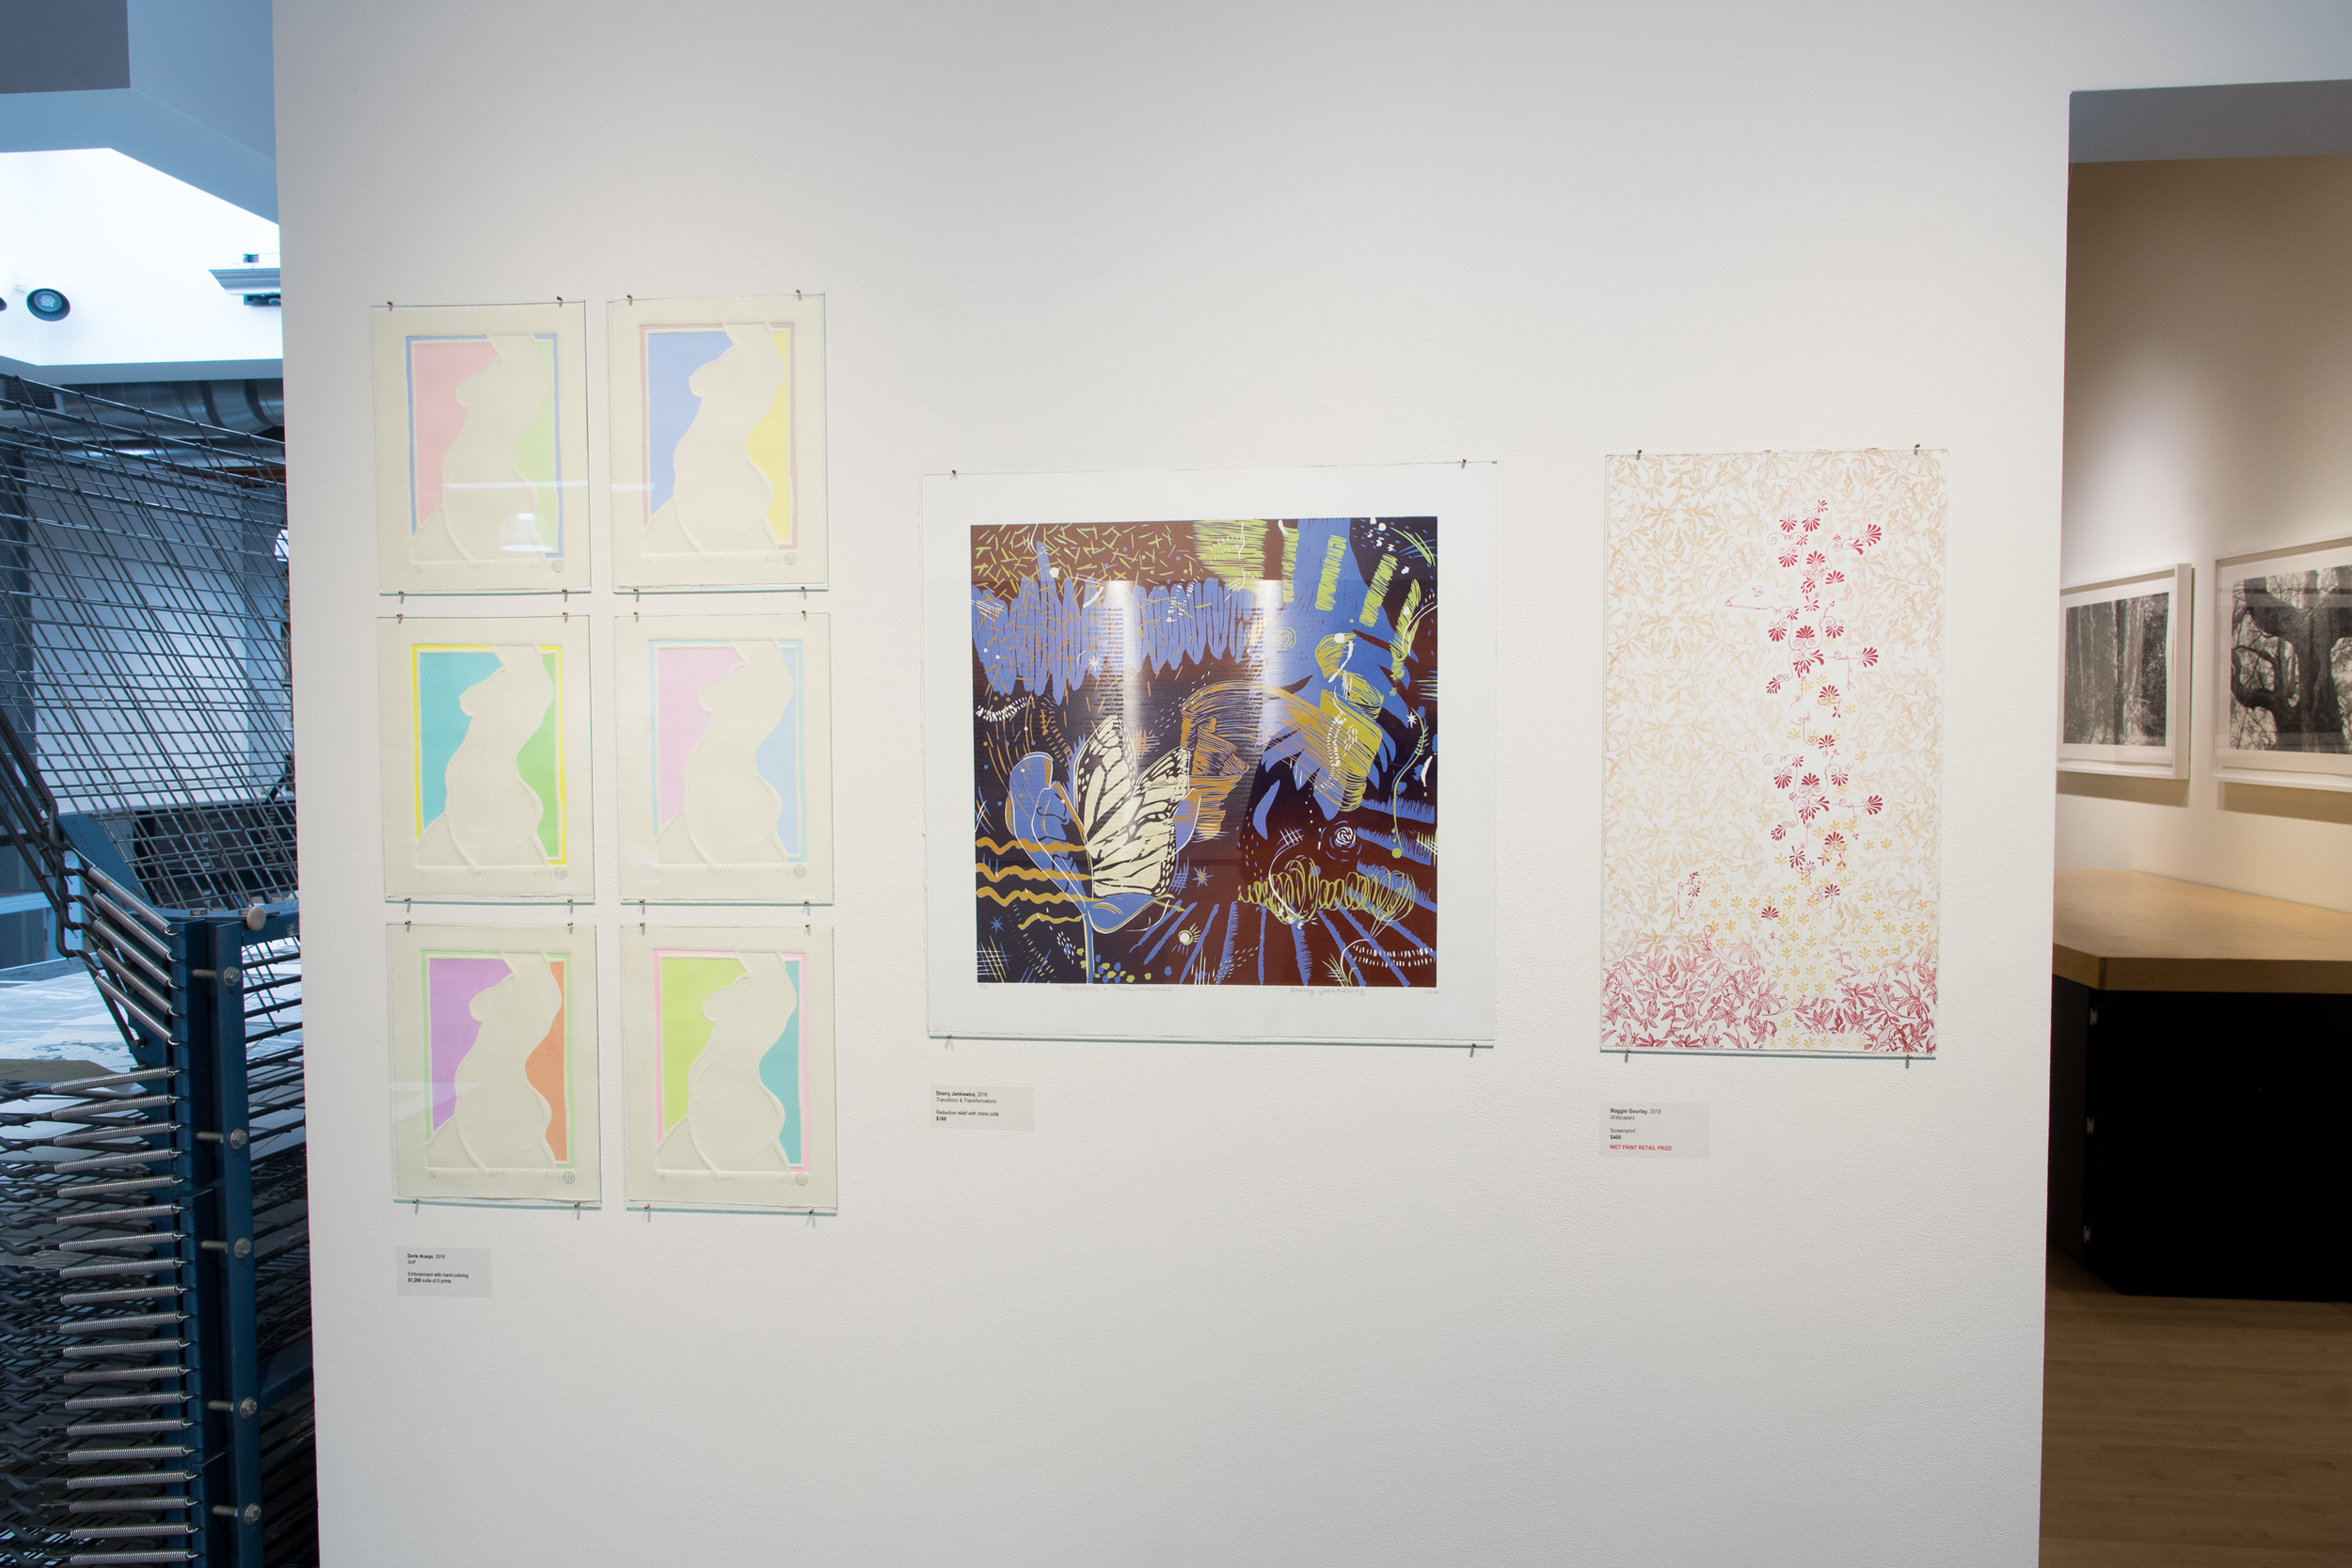 Highpoint PrintmakingStand Out Prints Exhibit180927a0164.JPG